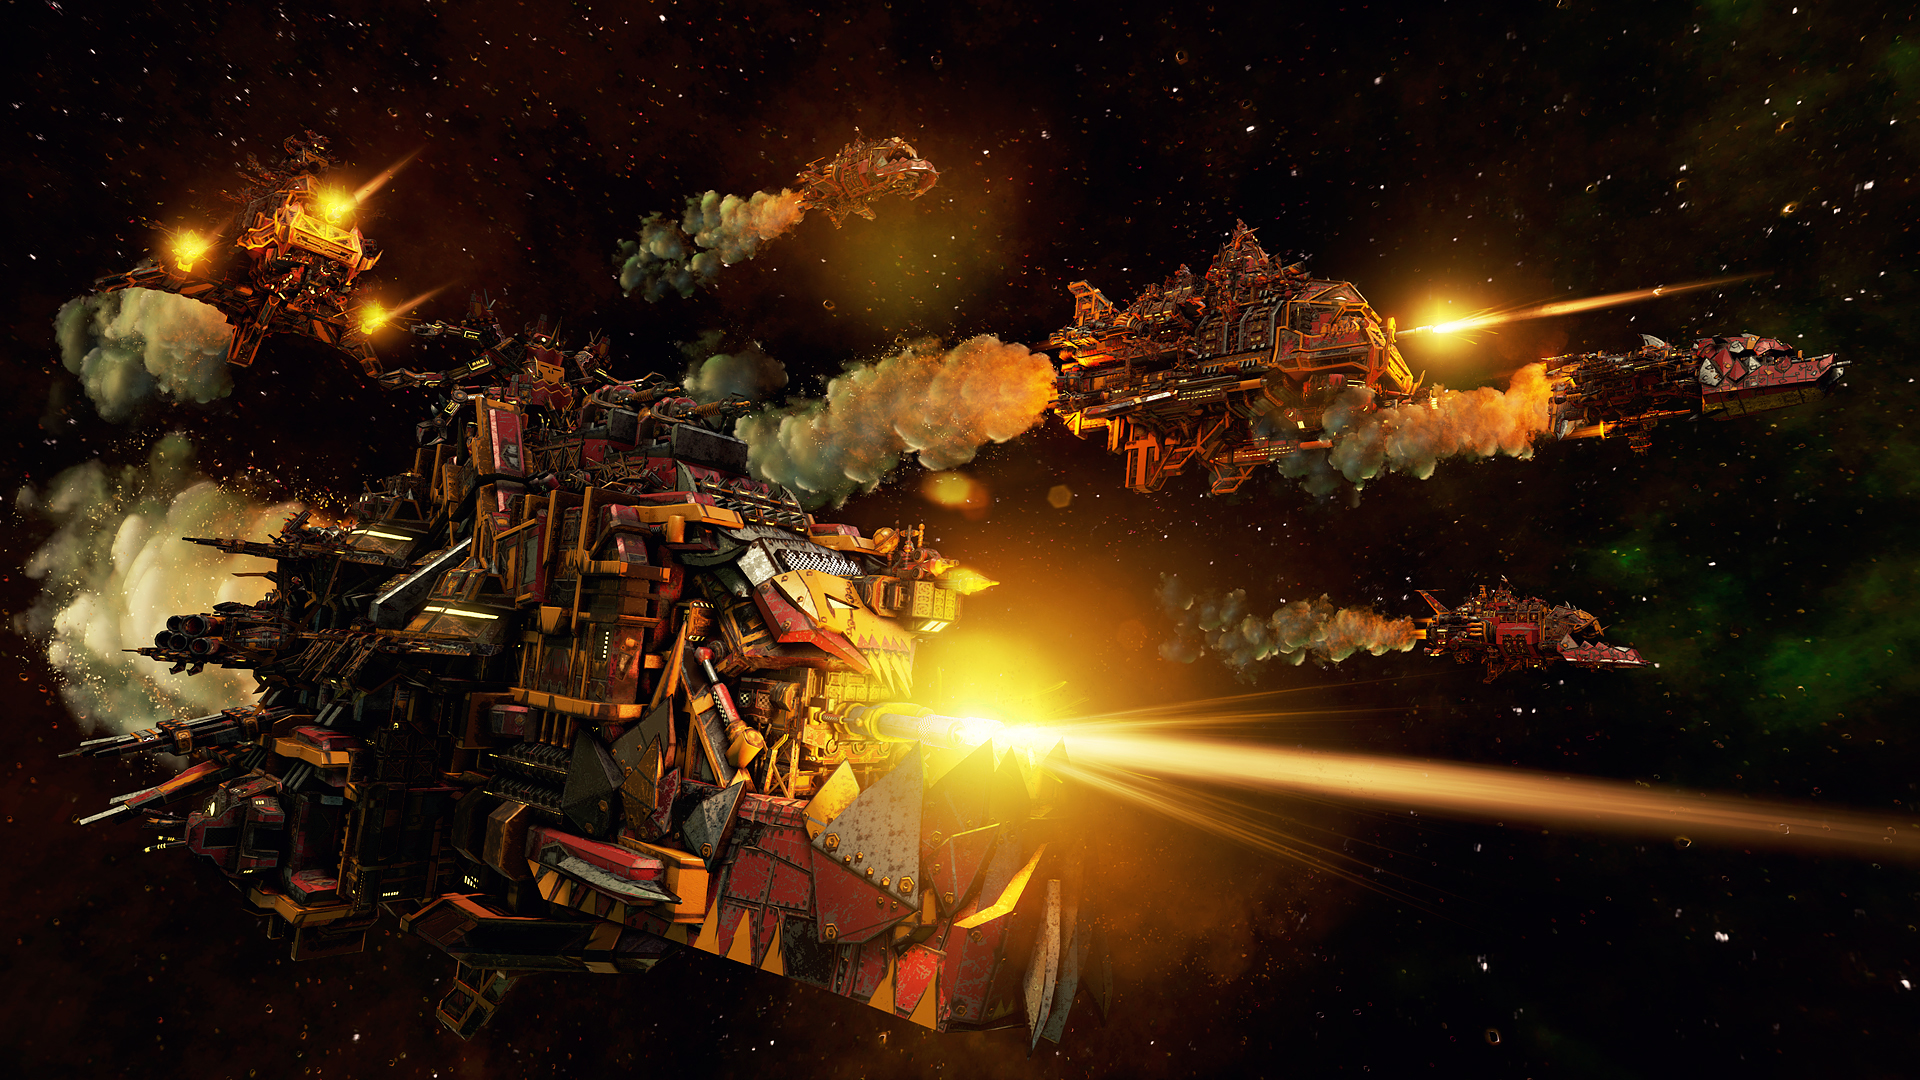 Ork ships are massive hybrids of scrap metal and firepower.